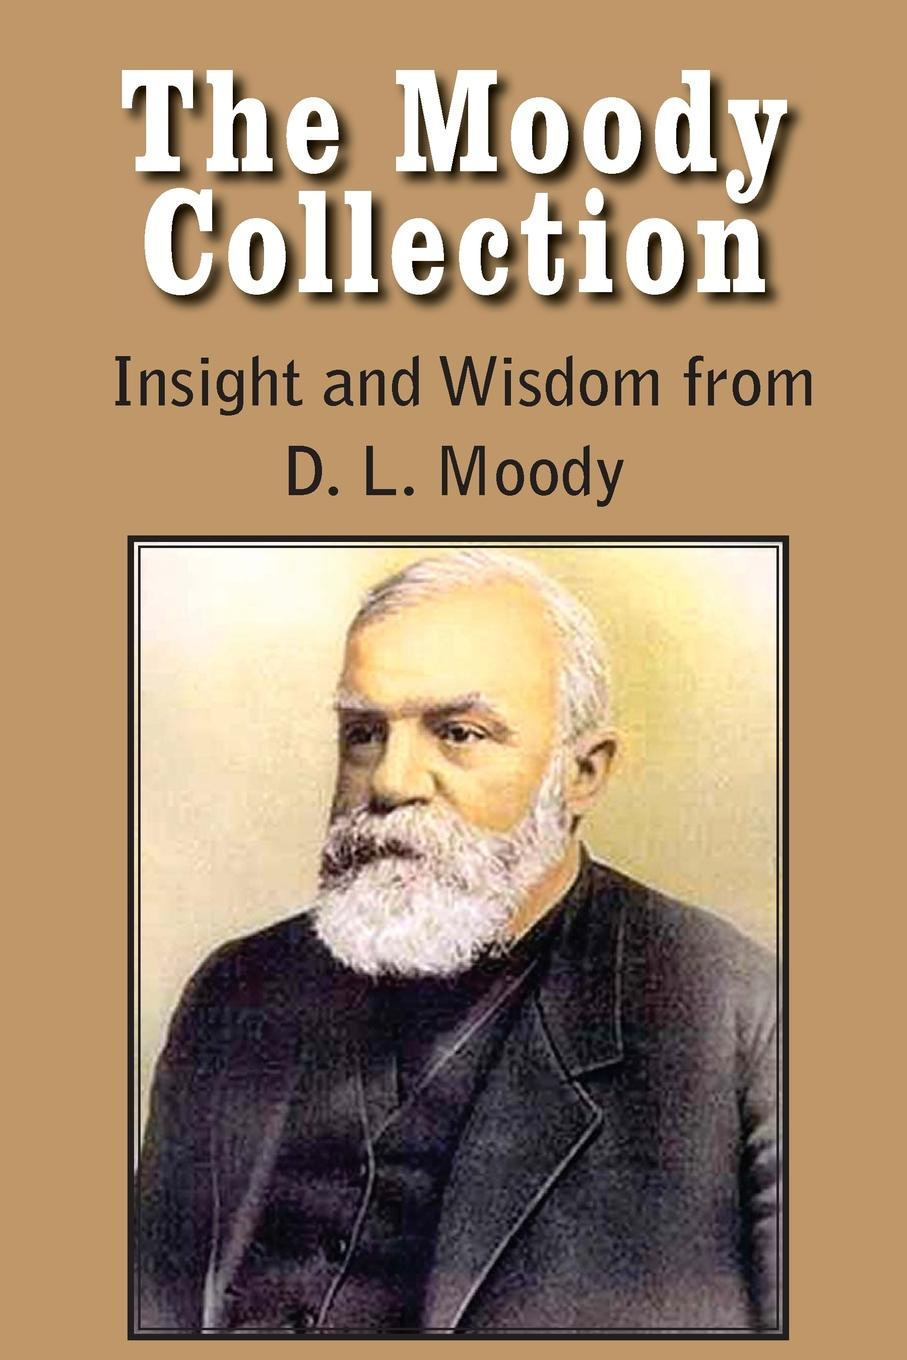 Dwight Lyman Moody The Moody Collection, Insight and Wisdom from D. L. Moody - That Gospel Sermon on the Blessed Hope, Sovereign Grace, Sowing and Reaping, the Way to Go недорго, оригинальная цена